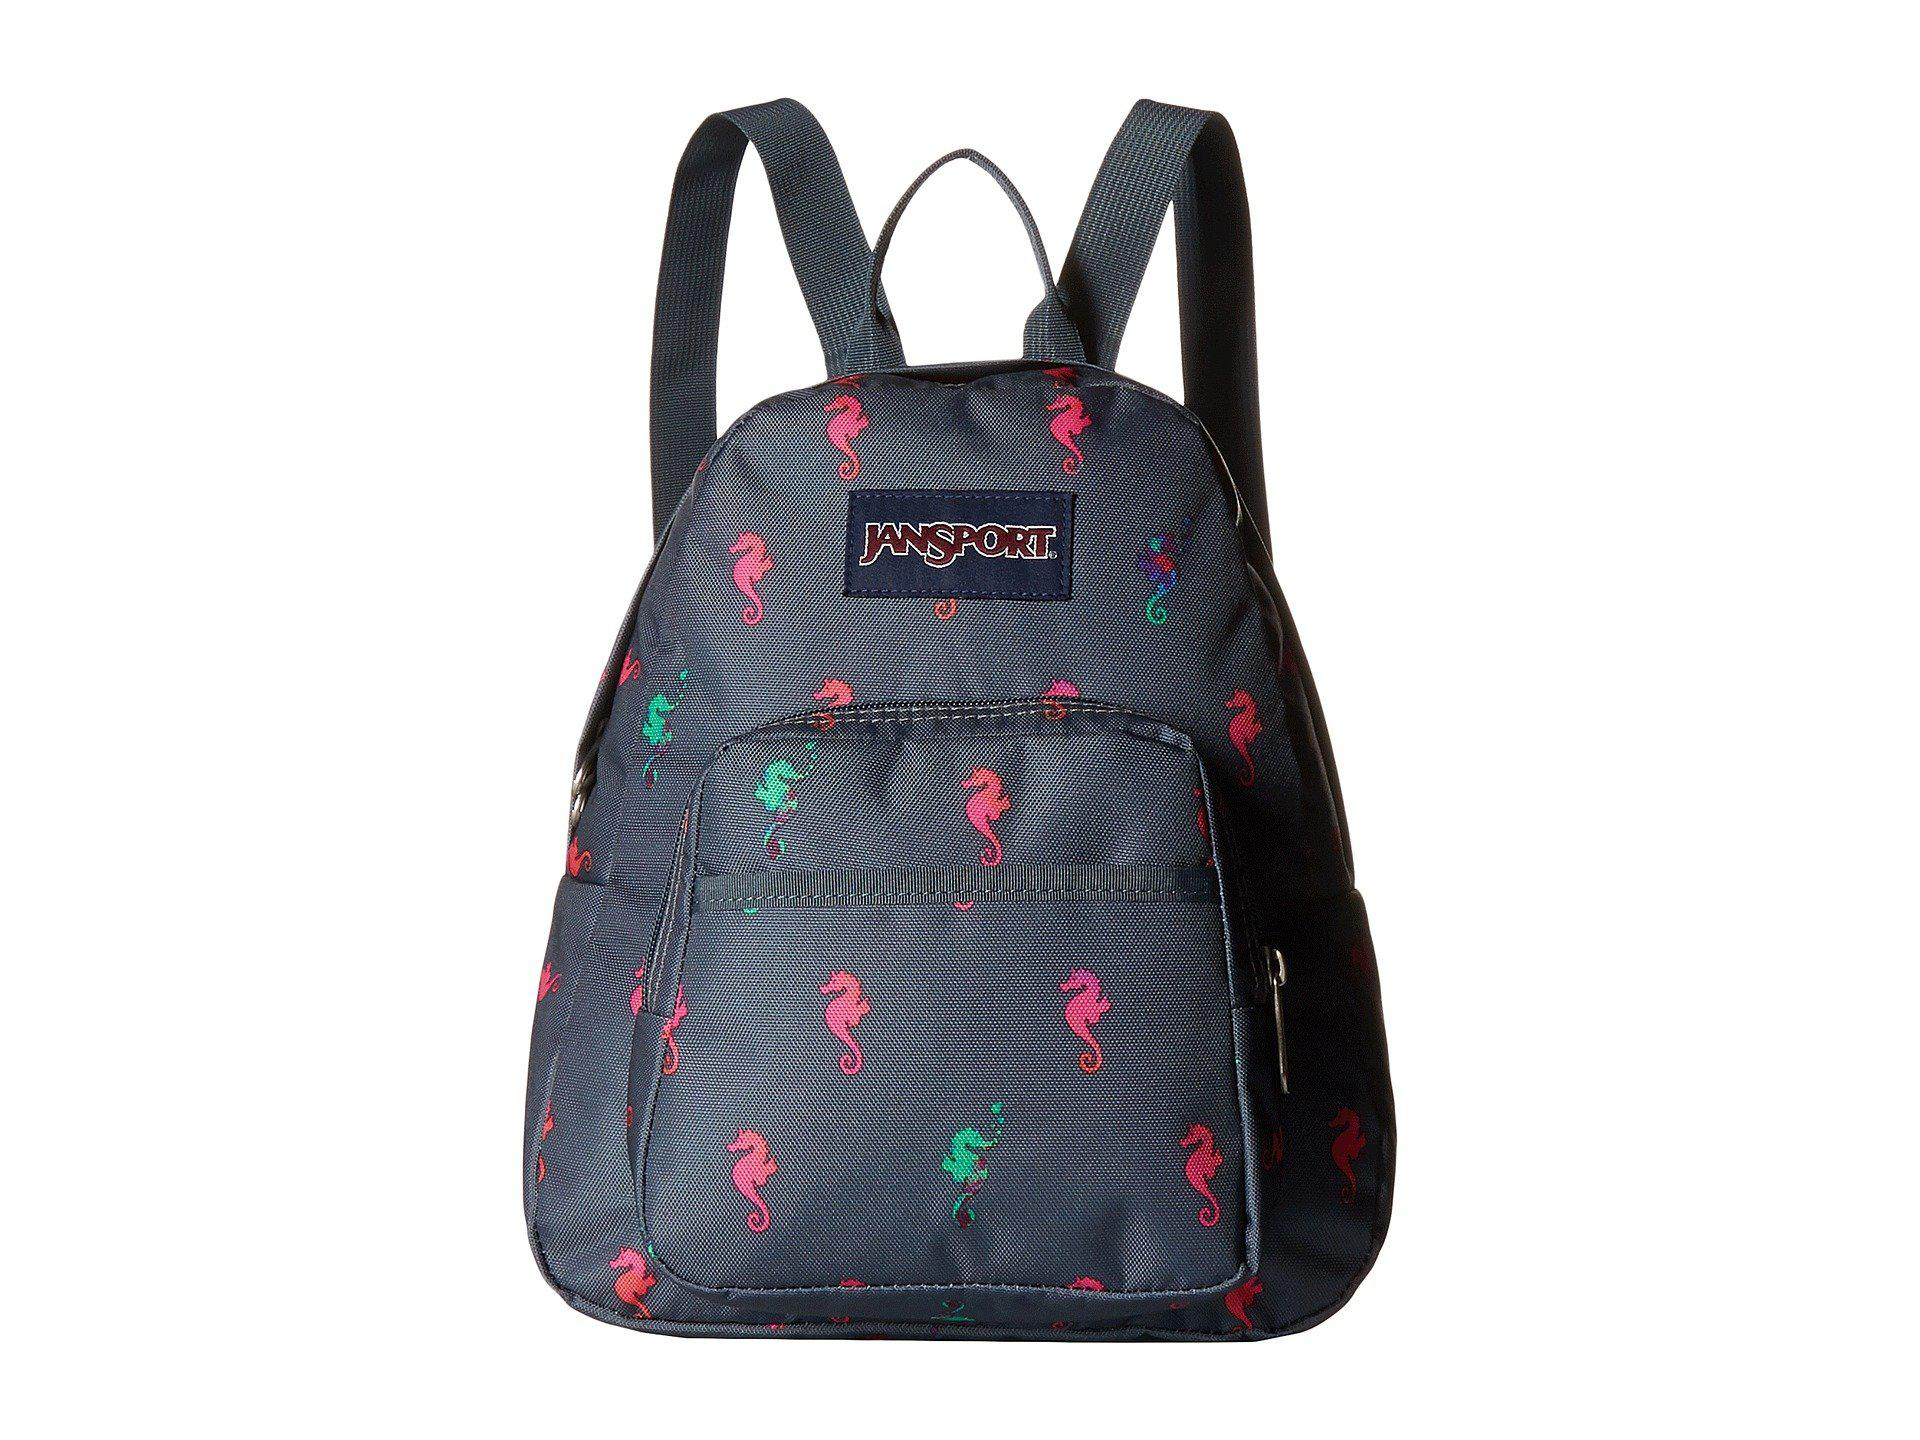 Lyst - Jansport Half Pint in Blue 5aa33e9fd7